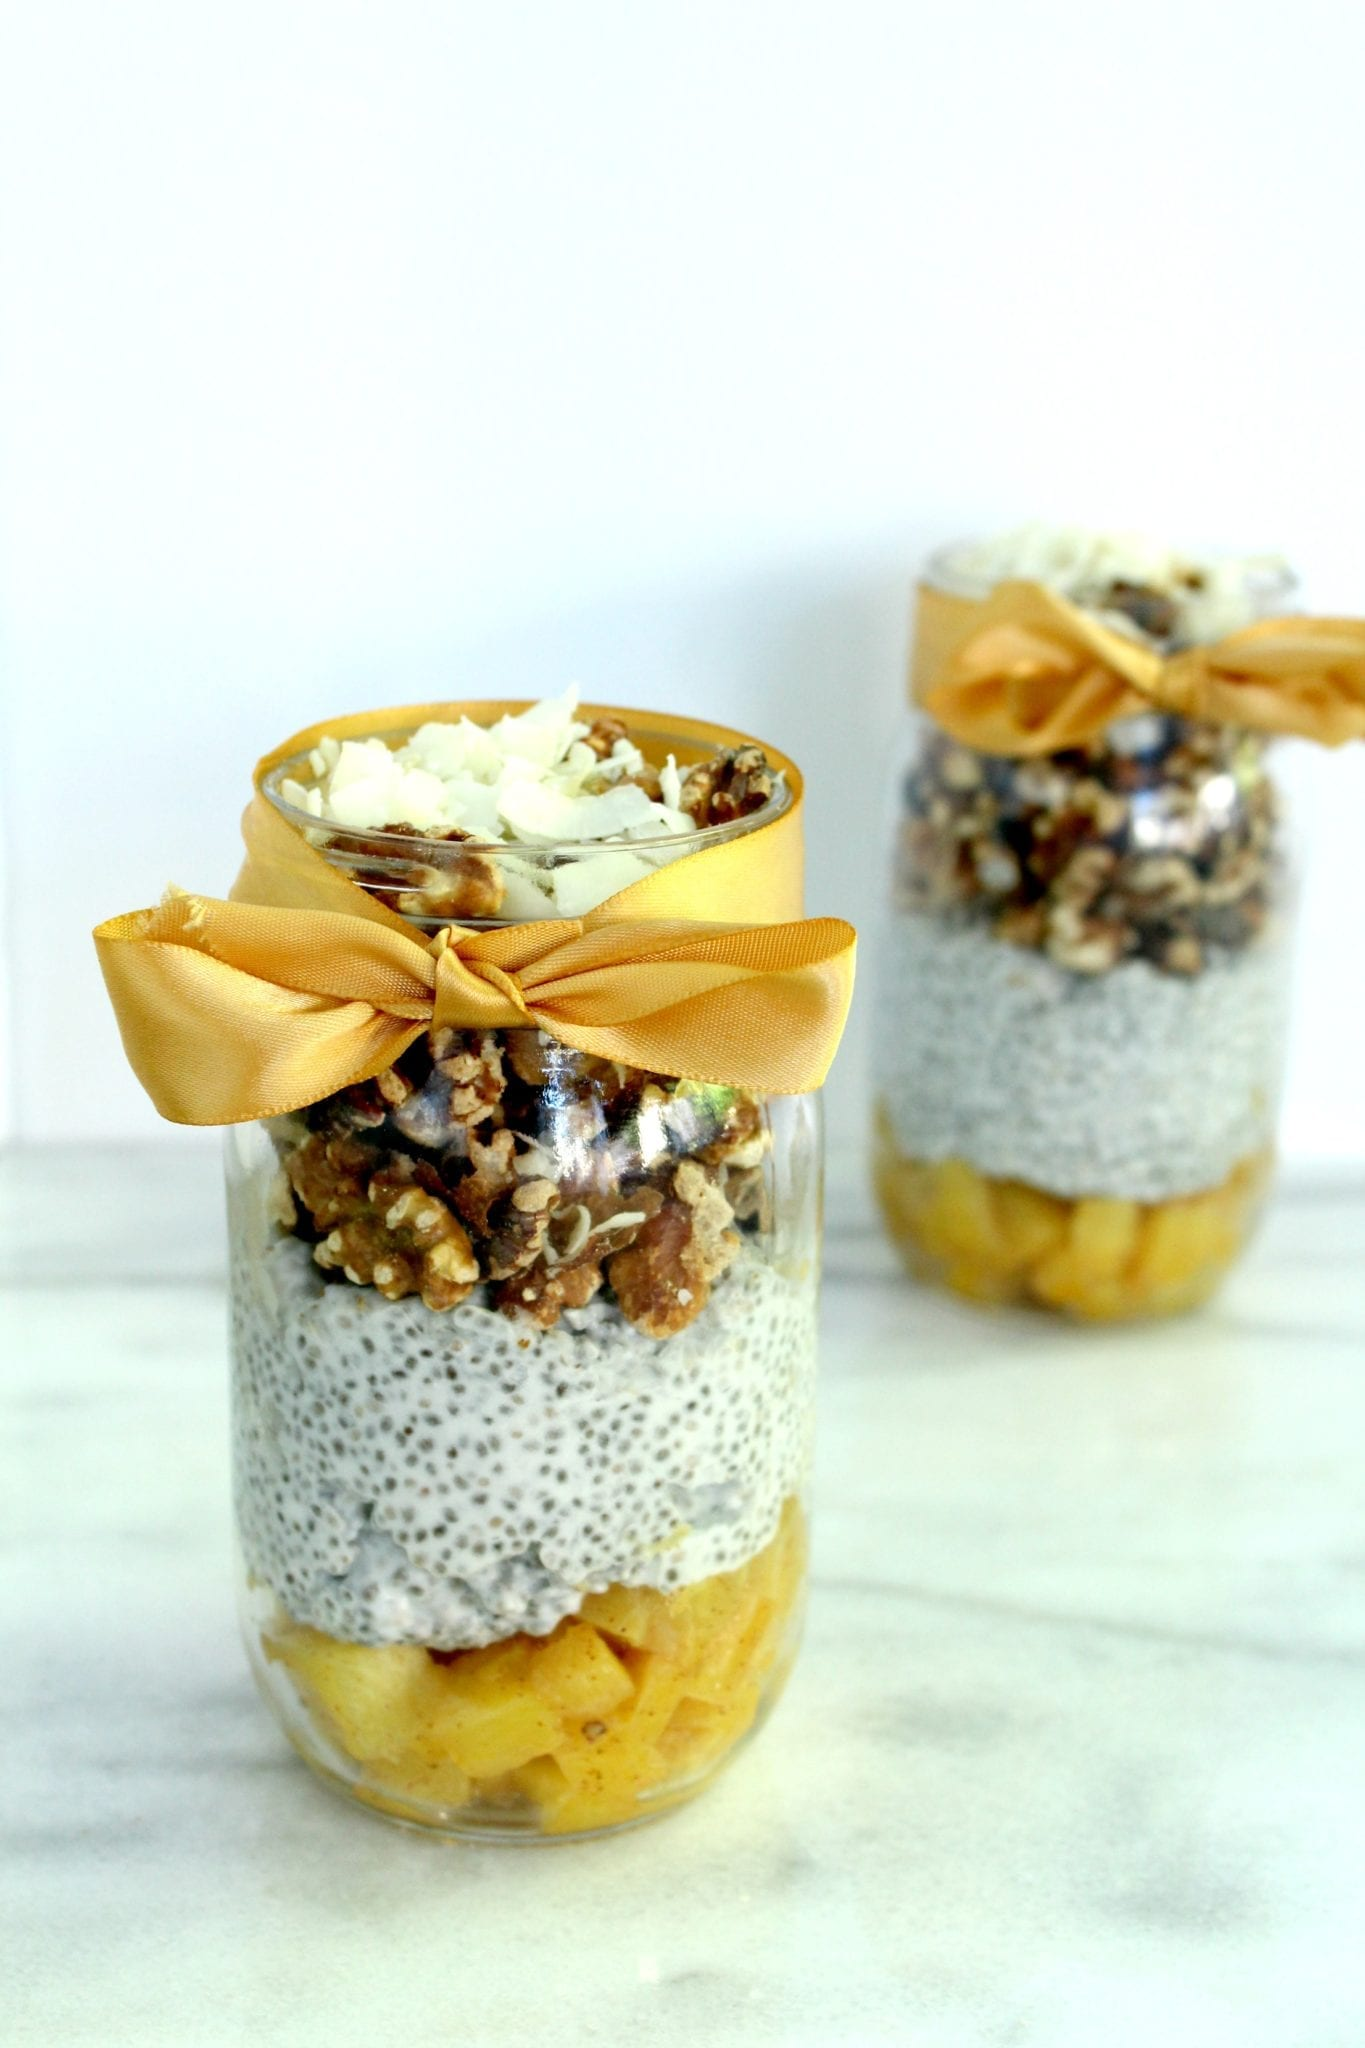 Chia Pineapple Walnut Parfait1